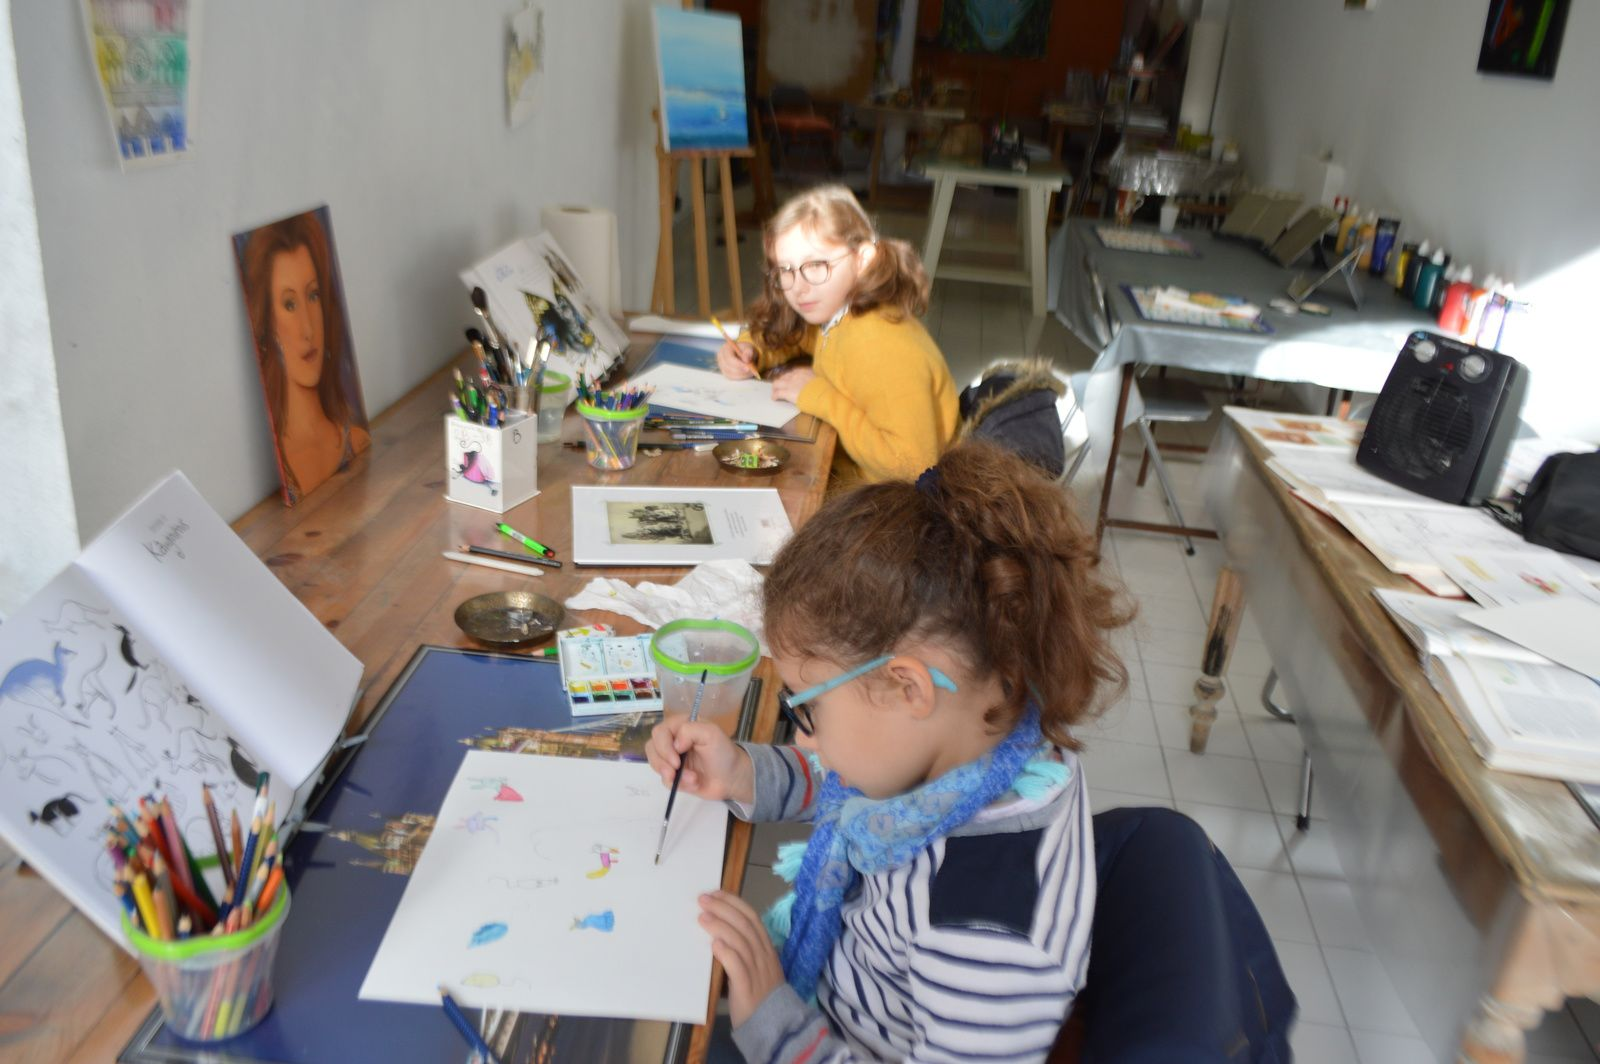 Cours particuliers photos !